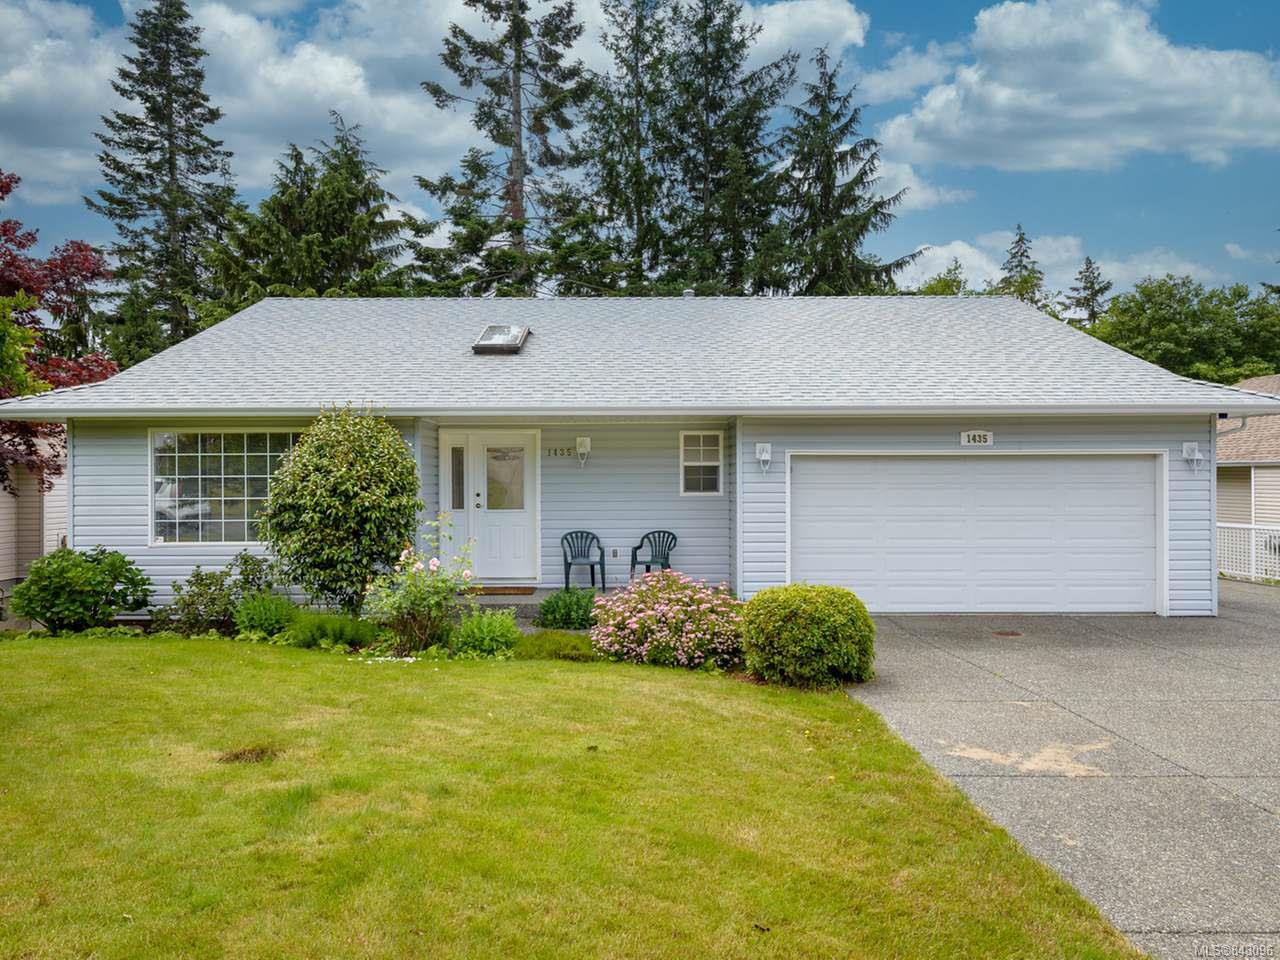 Main Photo: 1435 Sitka Ave in COURTENAY: CV Courtenay East House for sale (Comox Valley)  : MLS®# 843096